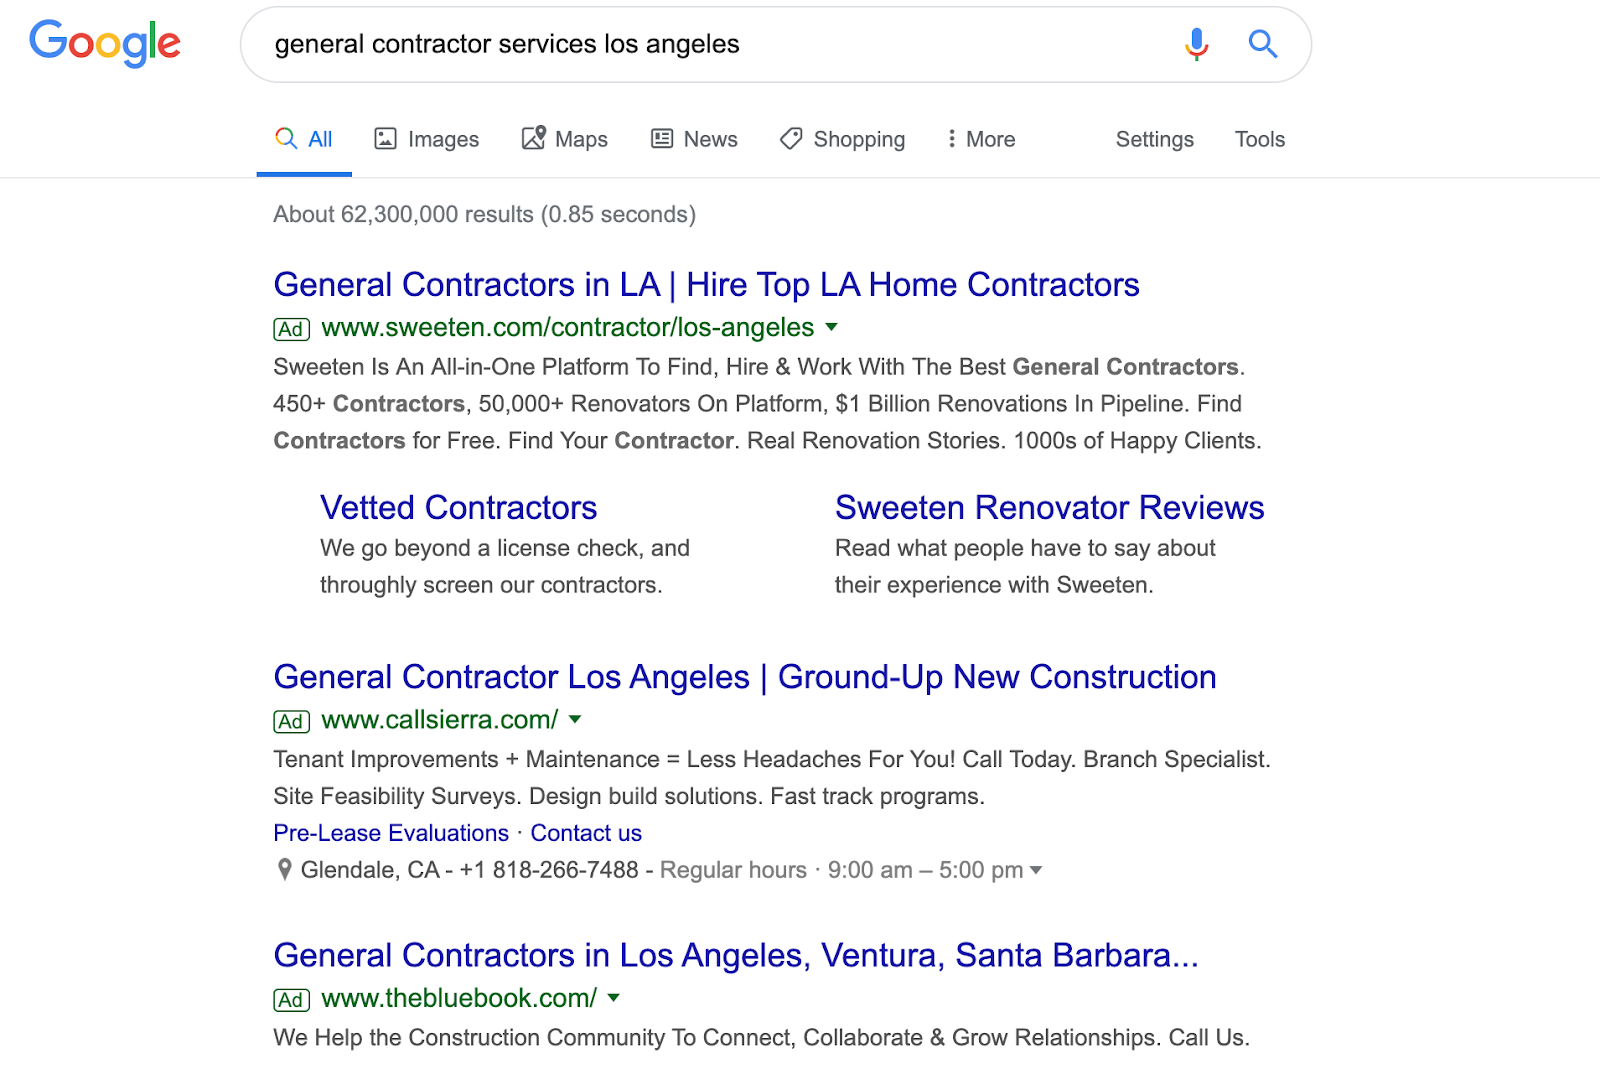 Google Paid Ads Search Results Screenshot